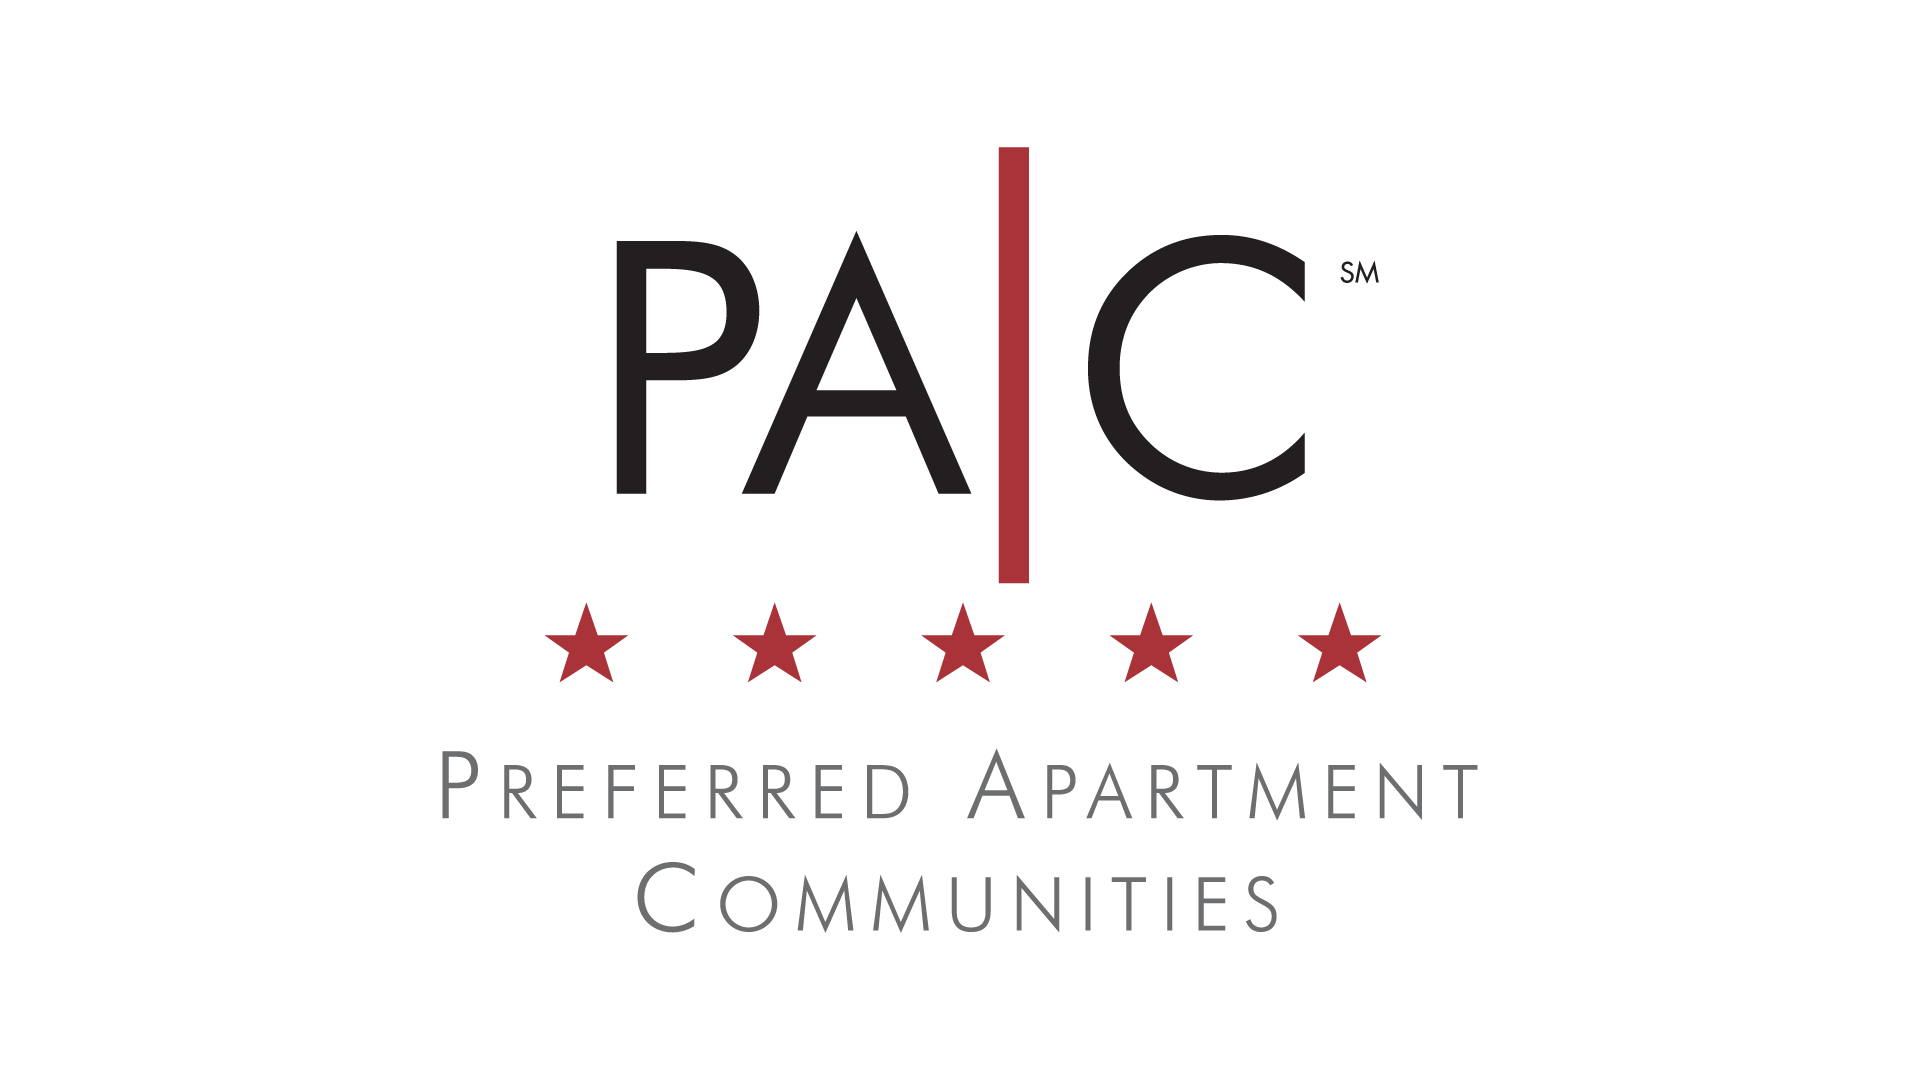 preferred-apartment-communities-inc-apts-plans-dividend-increase-8211-020-per-share.png